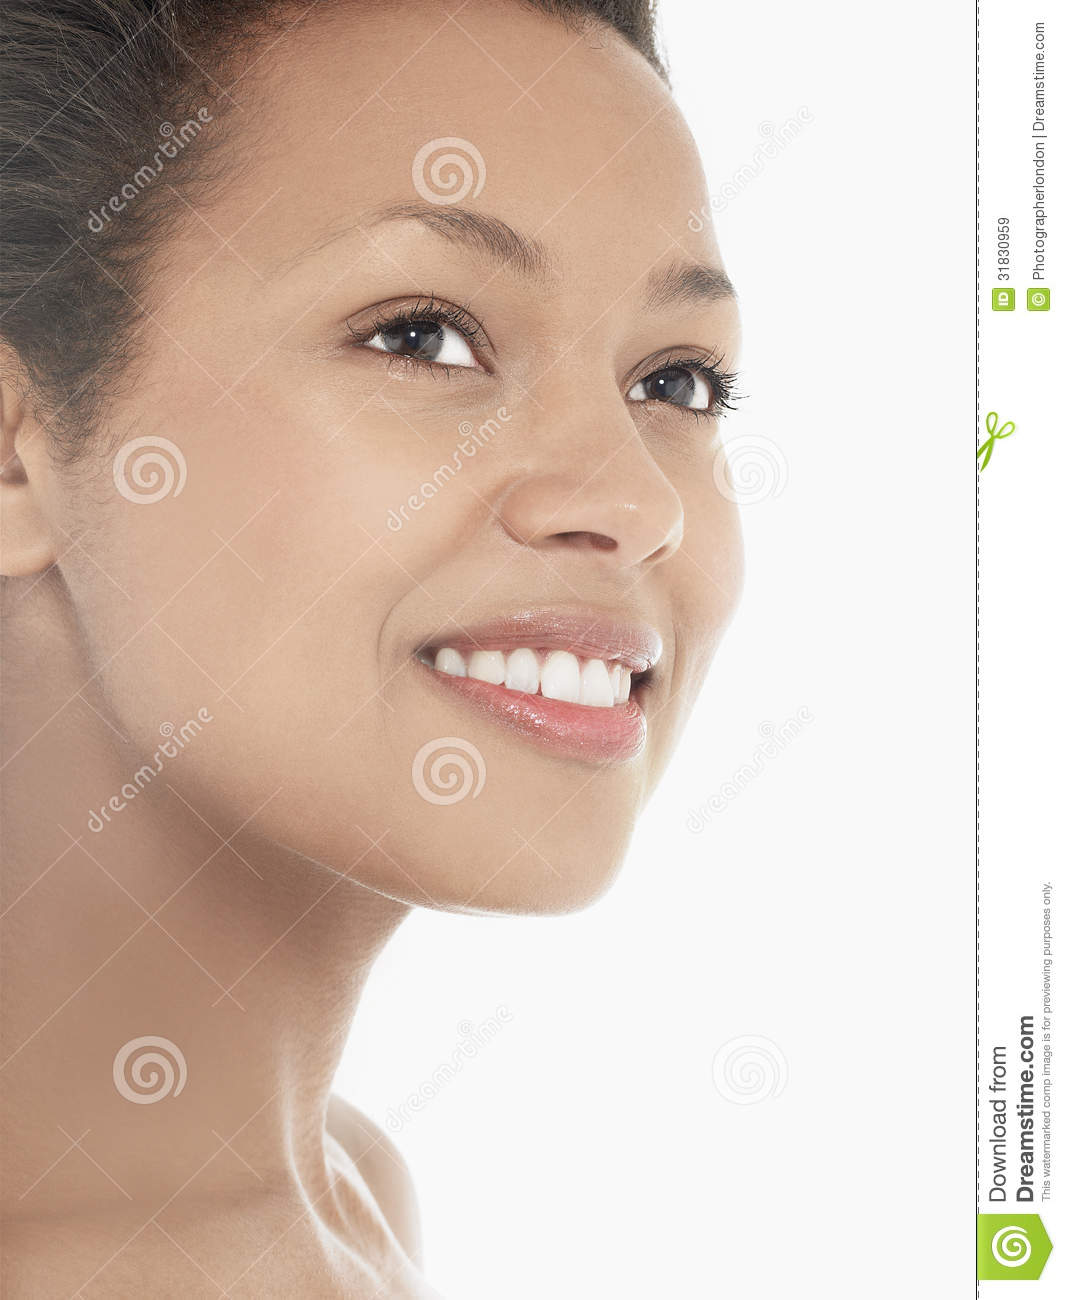 Headshot Of An Attractive Young Woman Smiling Royalty Free Stock ...